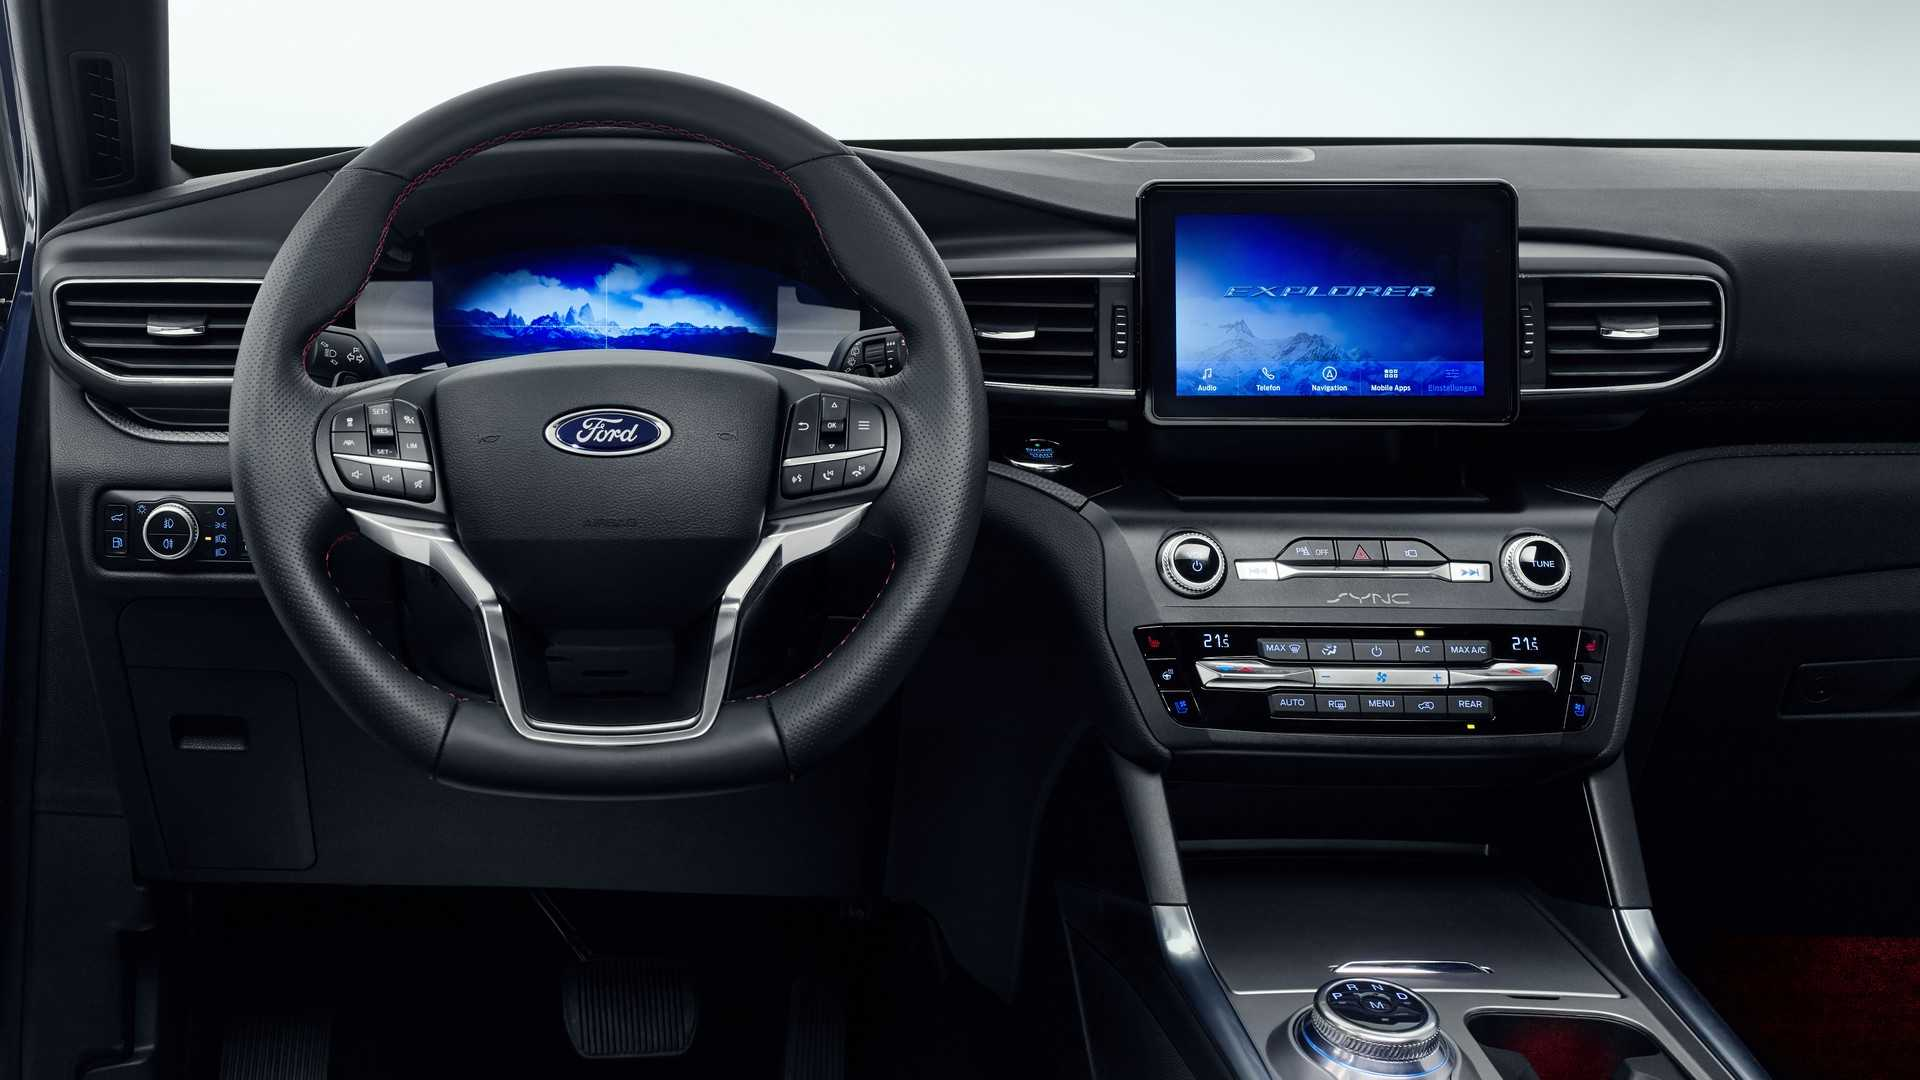 2014 Ford Explorer Hd Wallpapers Autoevolution